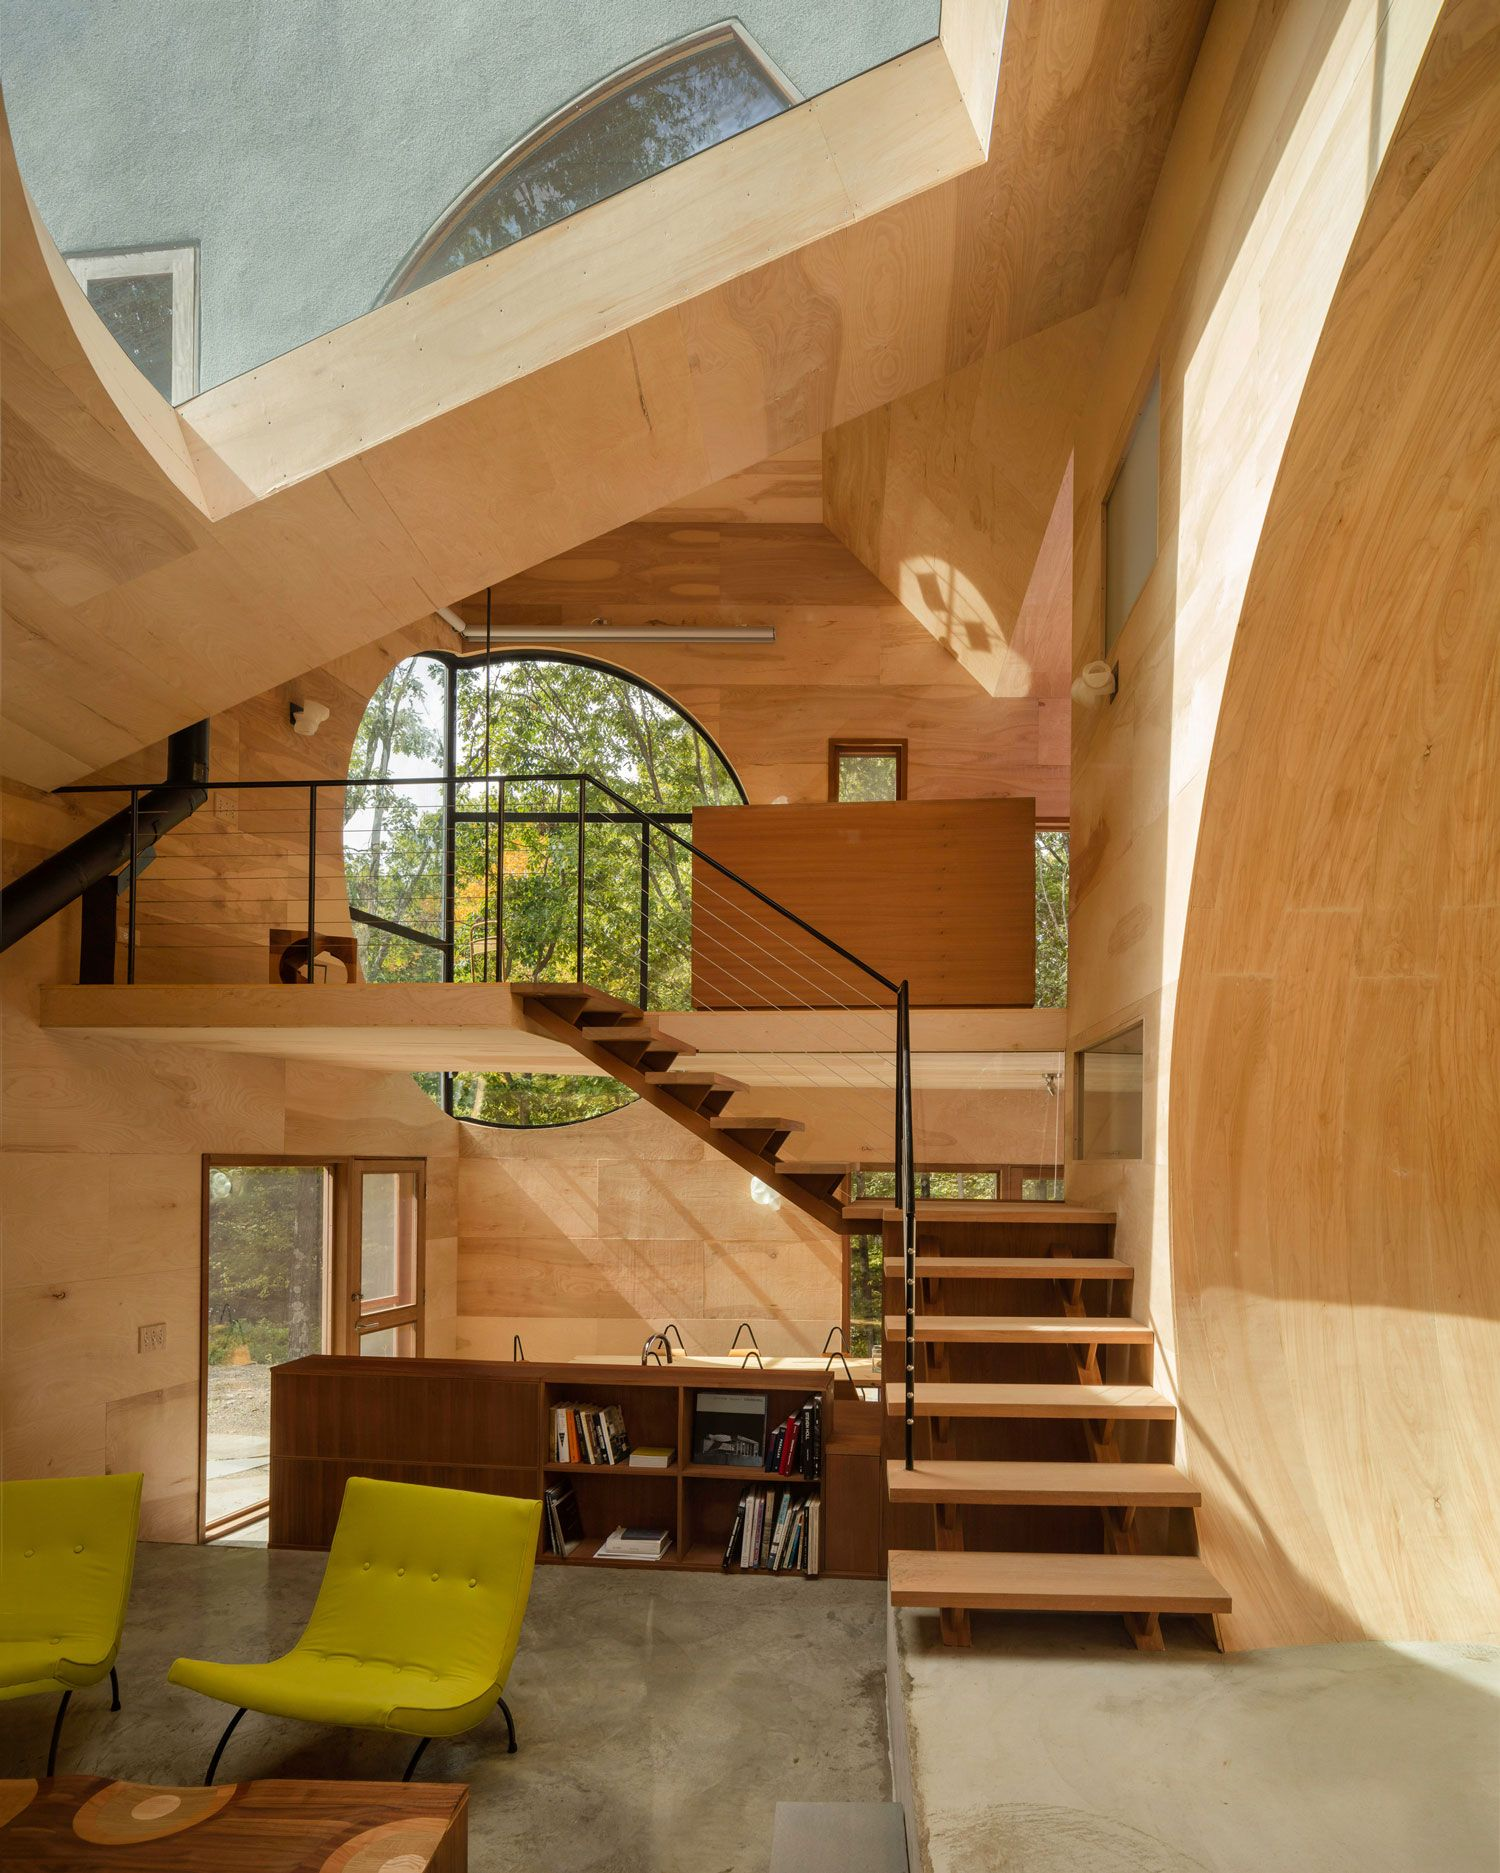 Ex Of In House By Steven Holl   Yellowtrace Dezeen, Residential  Architecture, Architecture Design